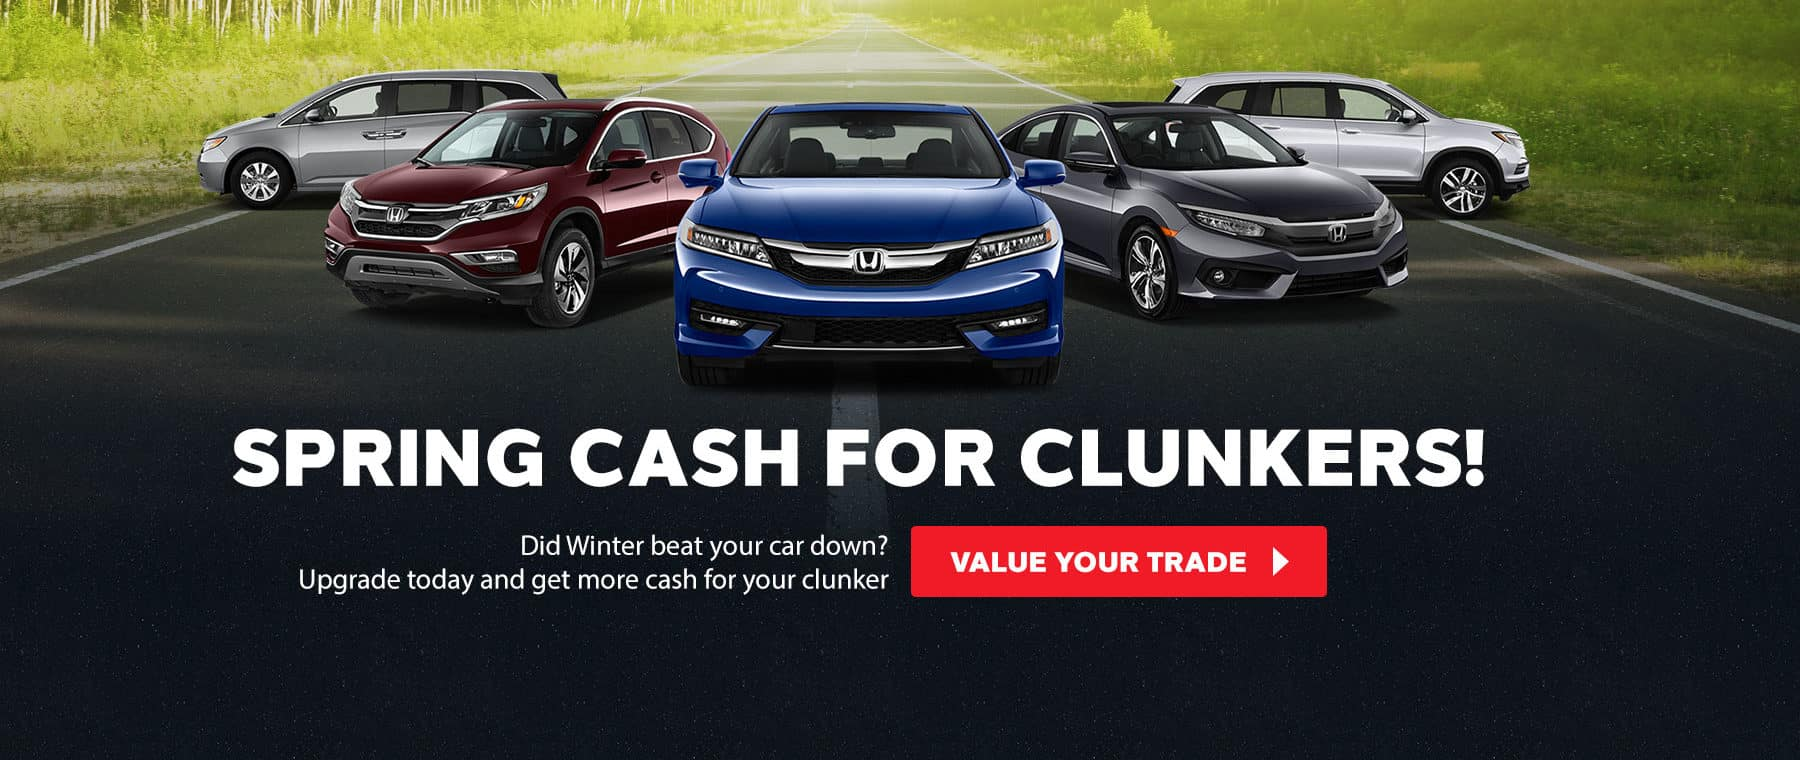 Silko Honda Cash for Clunkers